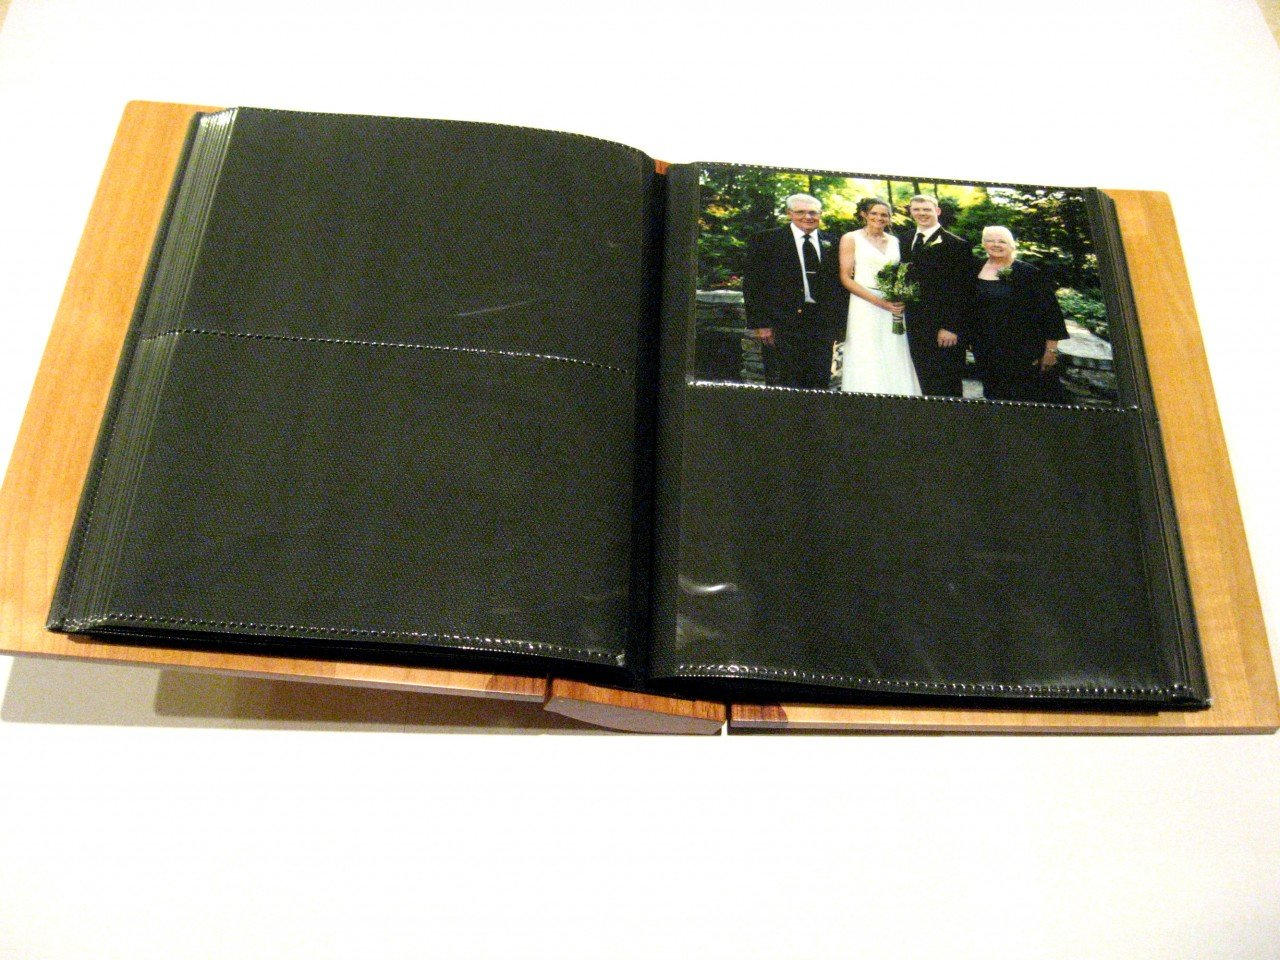 Personalized Wooden Photo Album With Your Custom Design - Large by Whitetail Woodcrafters (Image #8)